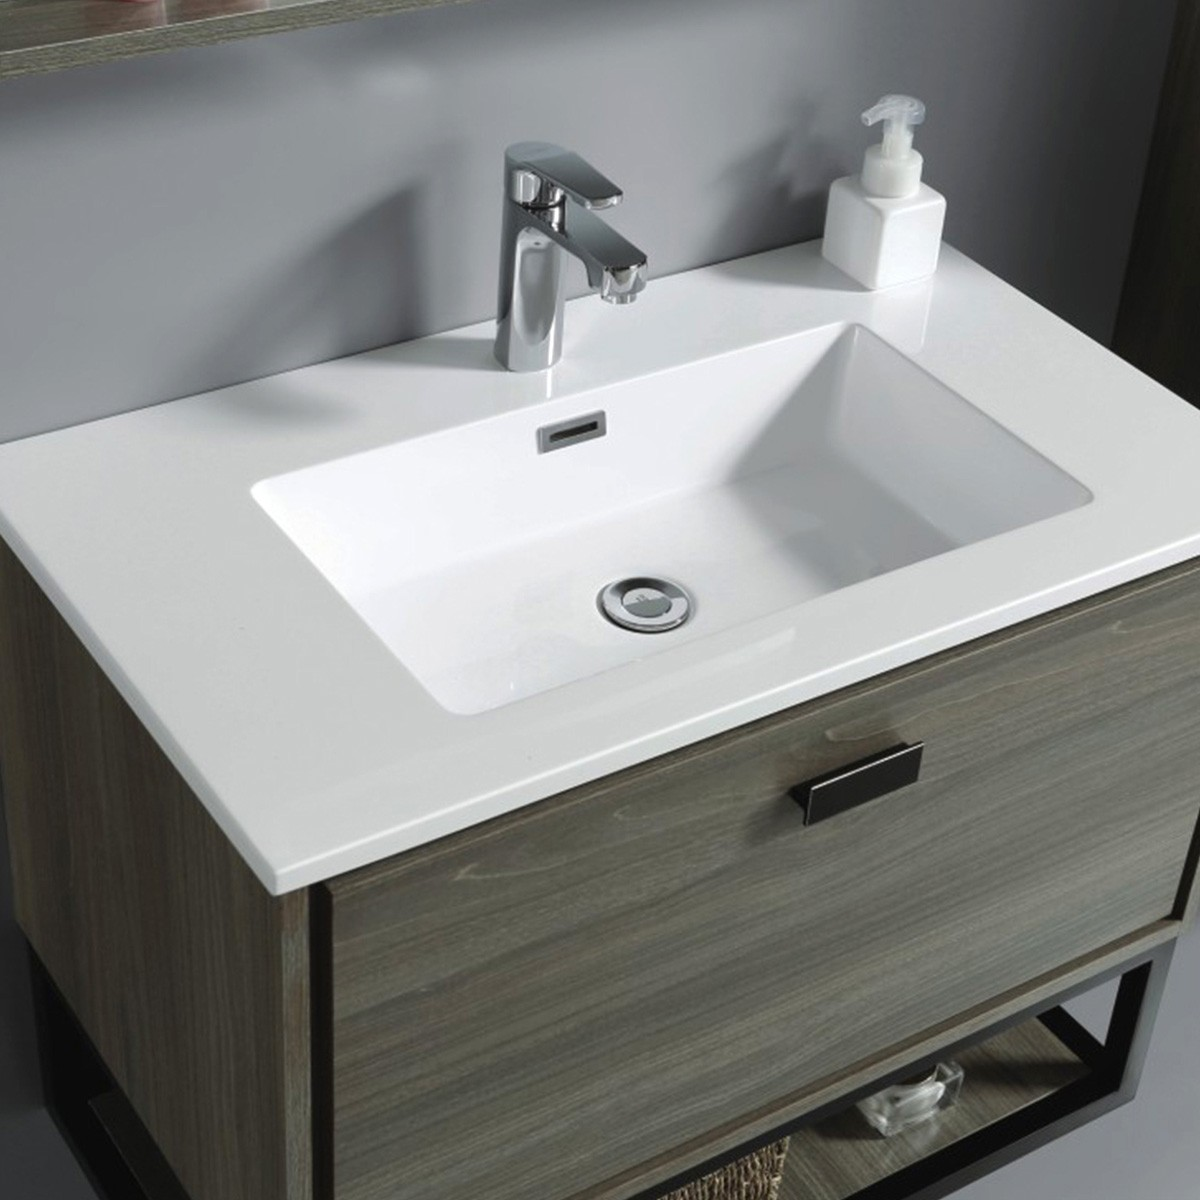 32 In. Wall Mount Vanity with Basin (VSW8001-V)